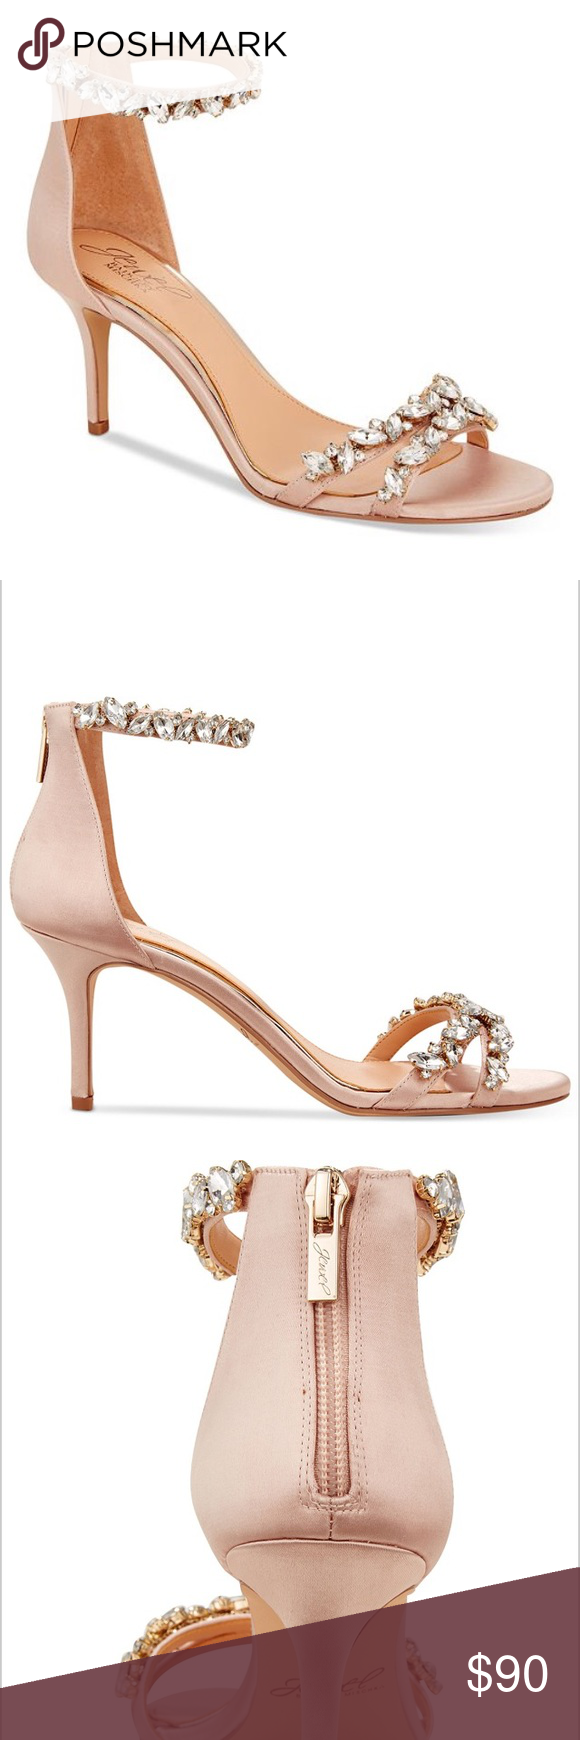 e677c45ddc410 Jewel Badgley Mischka Caroline Ankle-Strap Sandals Jewel Badgley Mischka  Caroline Embellished Ankle-Strap Evening Sandals-worn once for a photo  shoot.